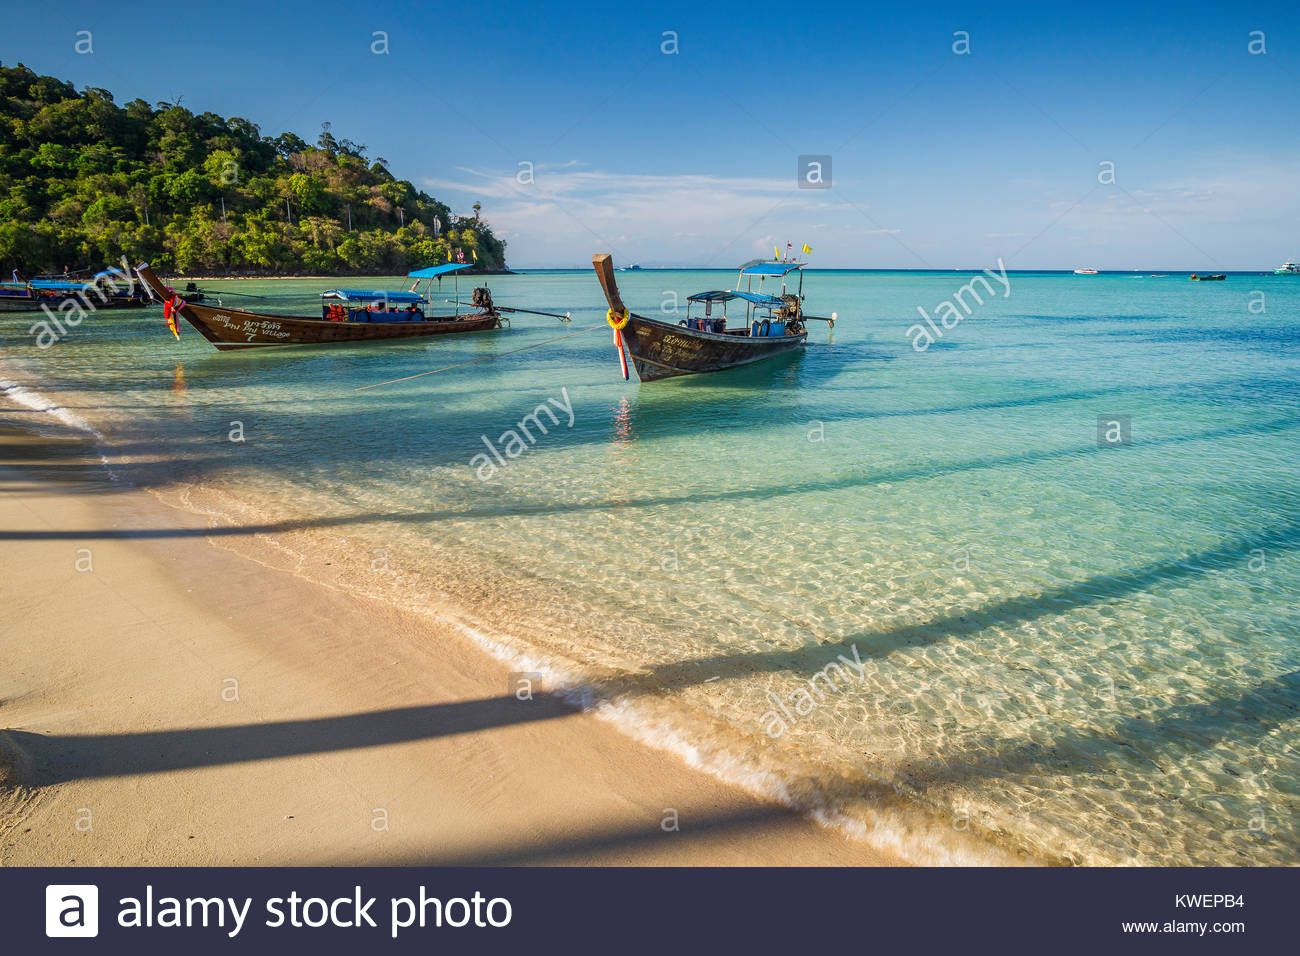 Long tail boats and the shadow of palm trees in Loh Bagao Bay - Koh Phi Phi Don - Thailand Stock Photo